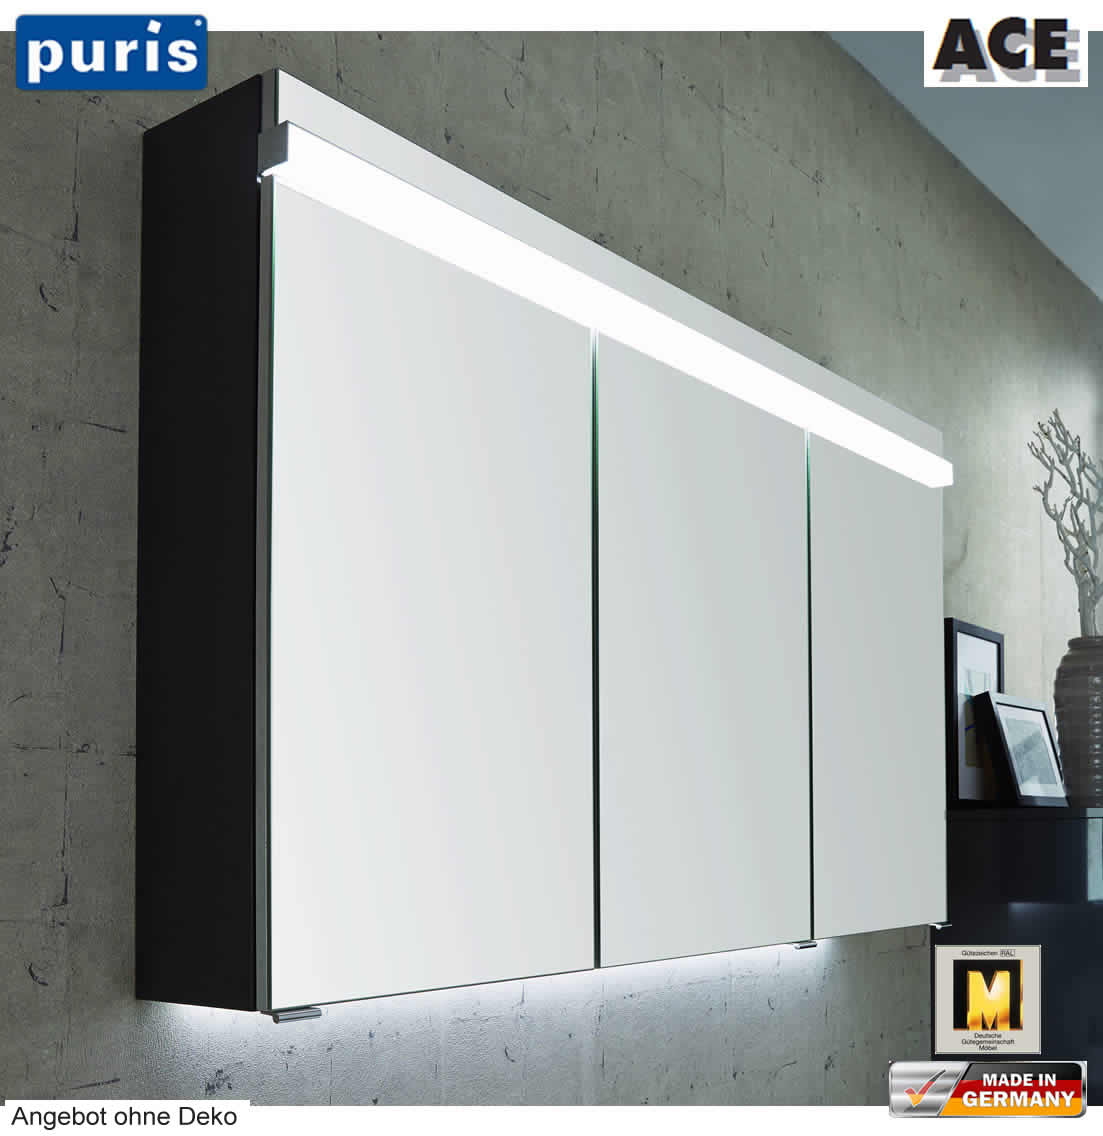 puris ace spiegelschrank 120 cm mit led beleuchtung. Black Bedroom Furniture Sets. Home Design Ideas